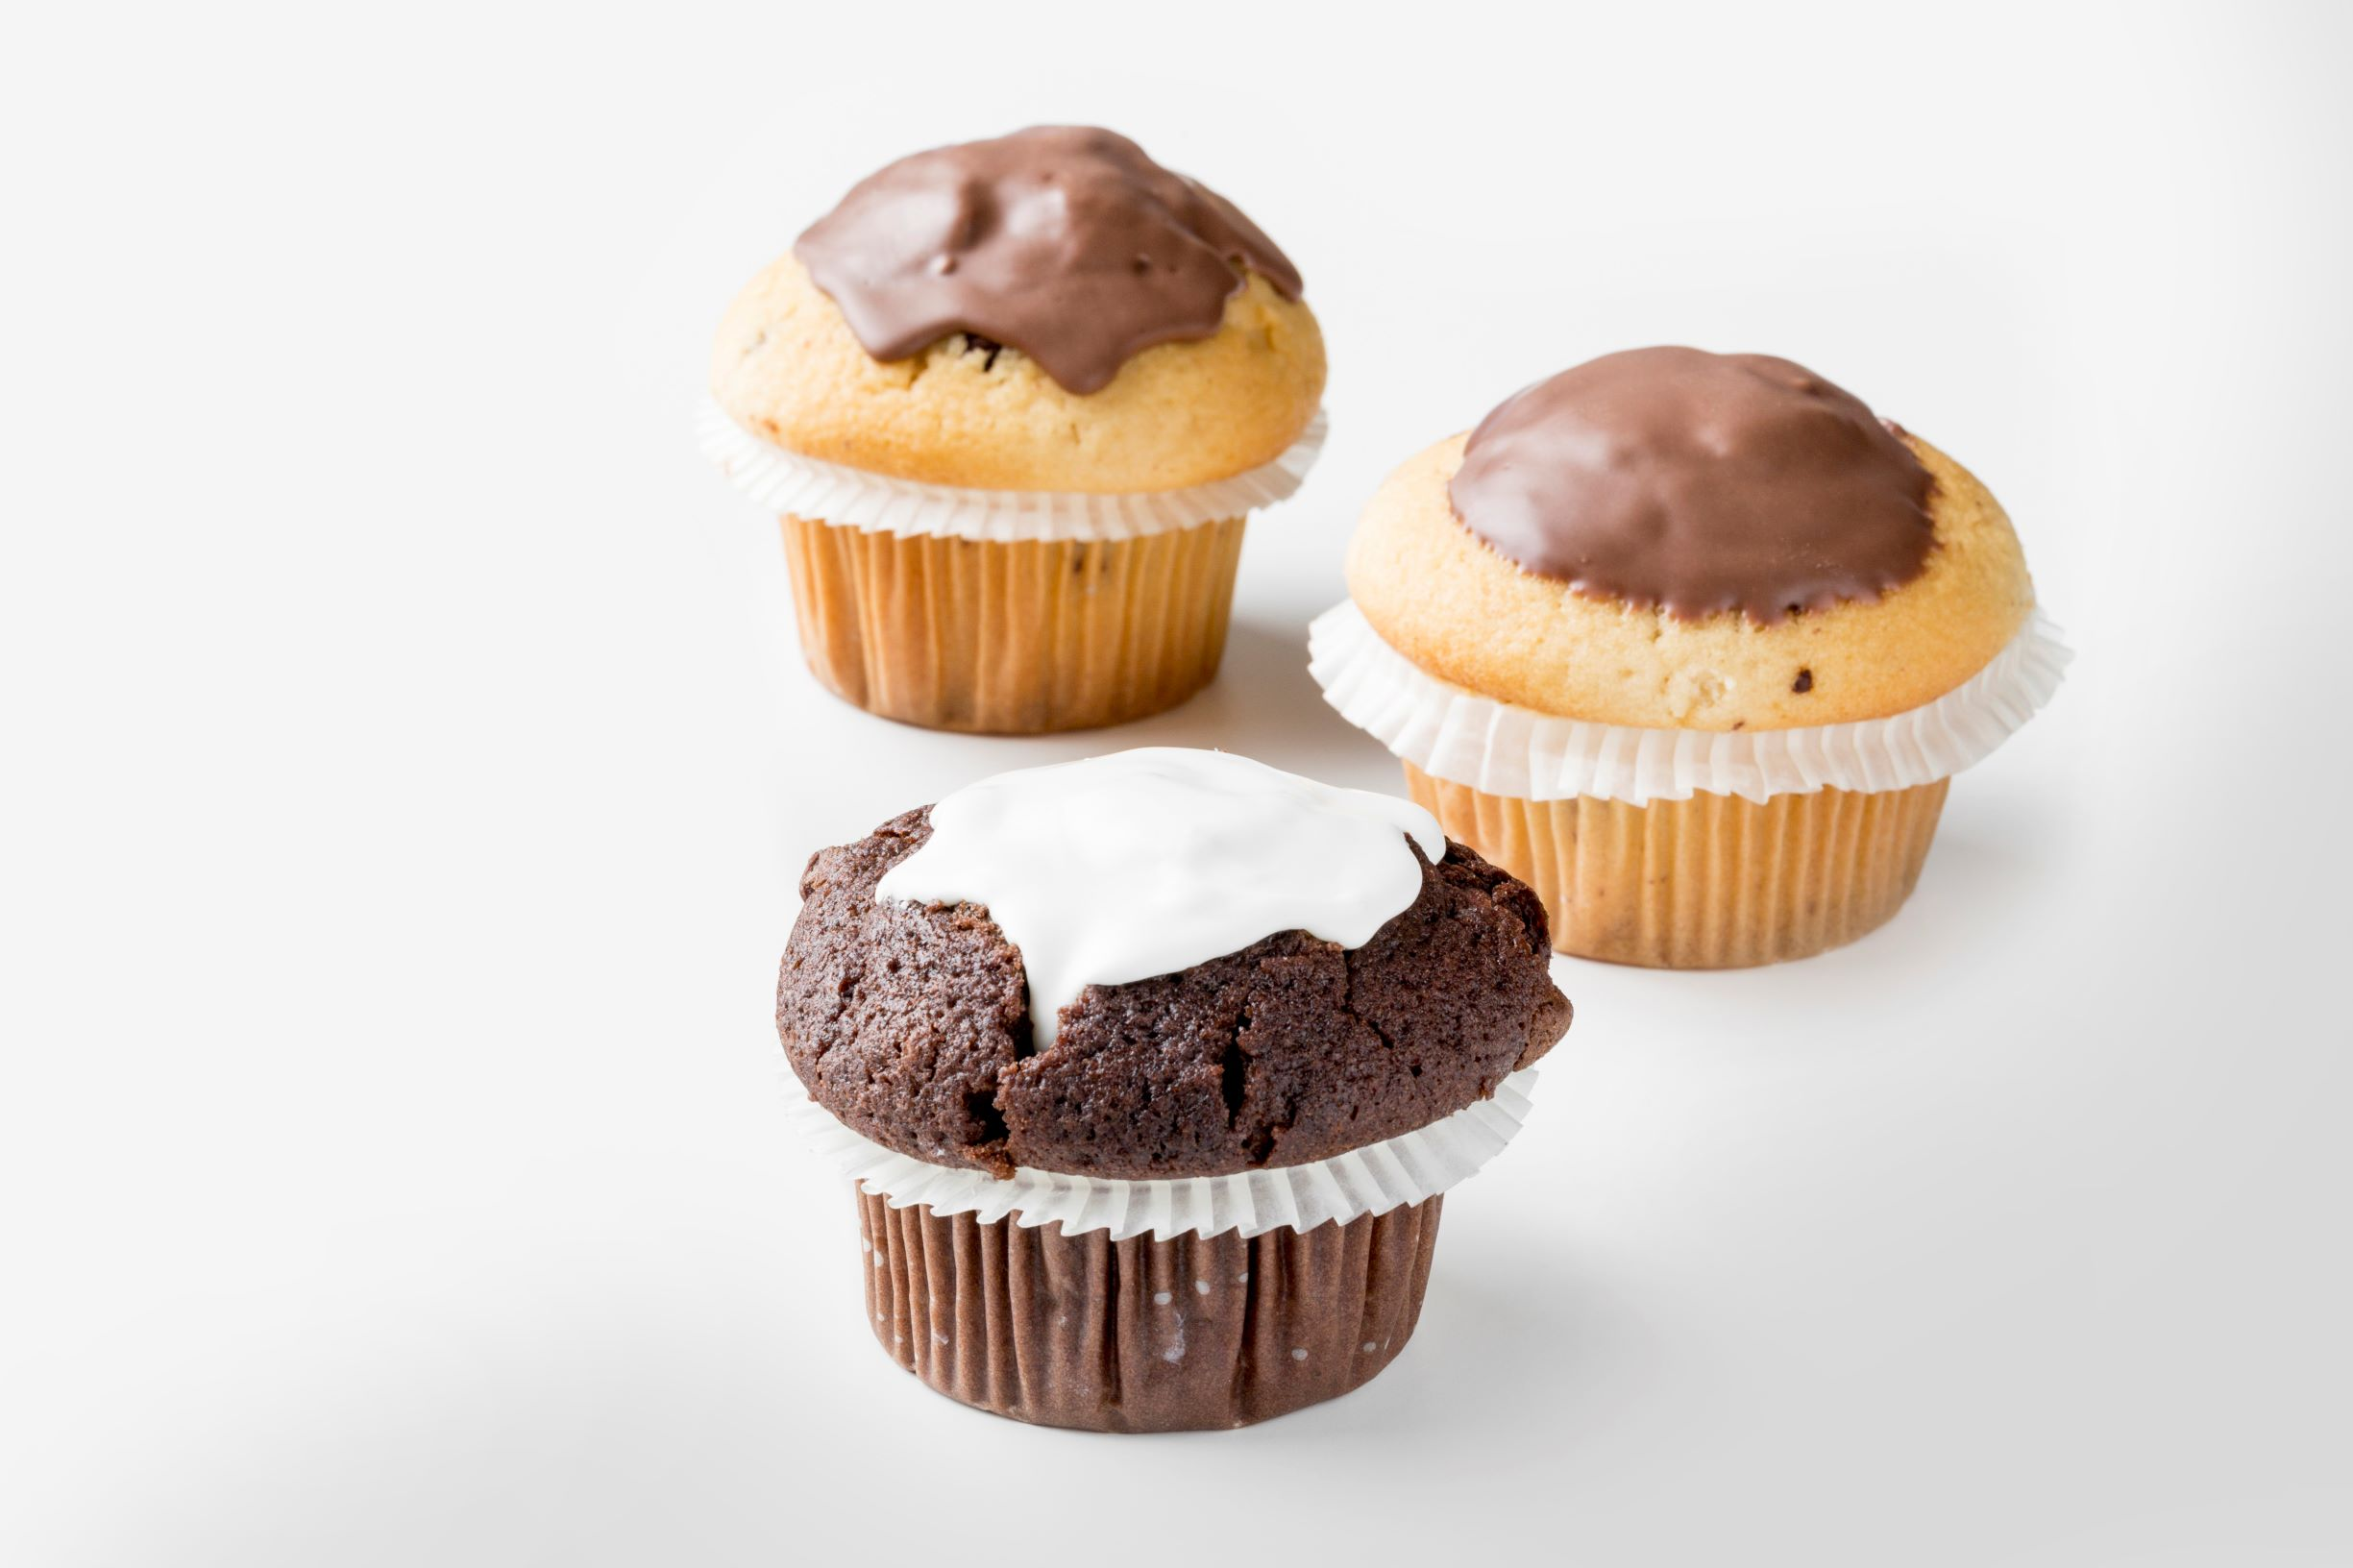 Three muffins covered with white and milk chocolate by FoodJet chocolate depositor